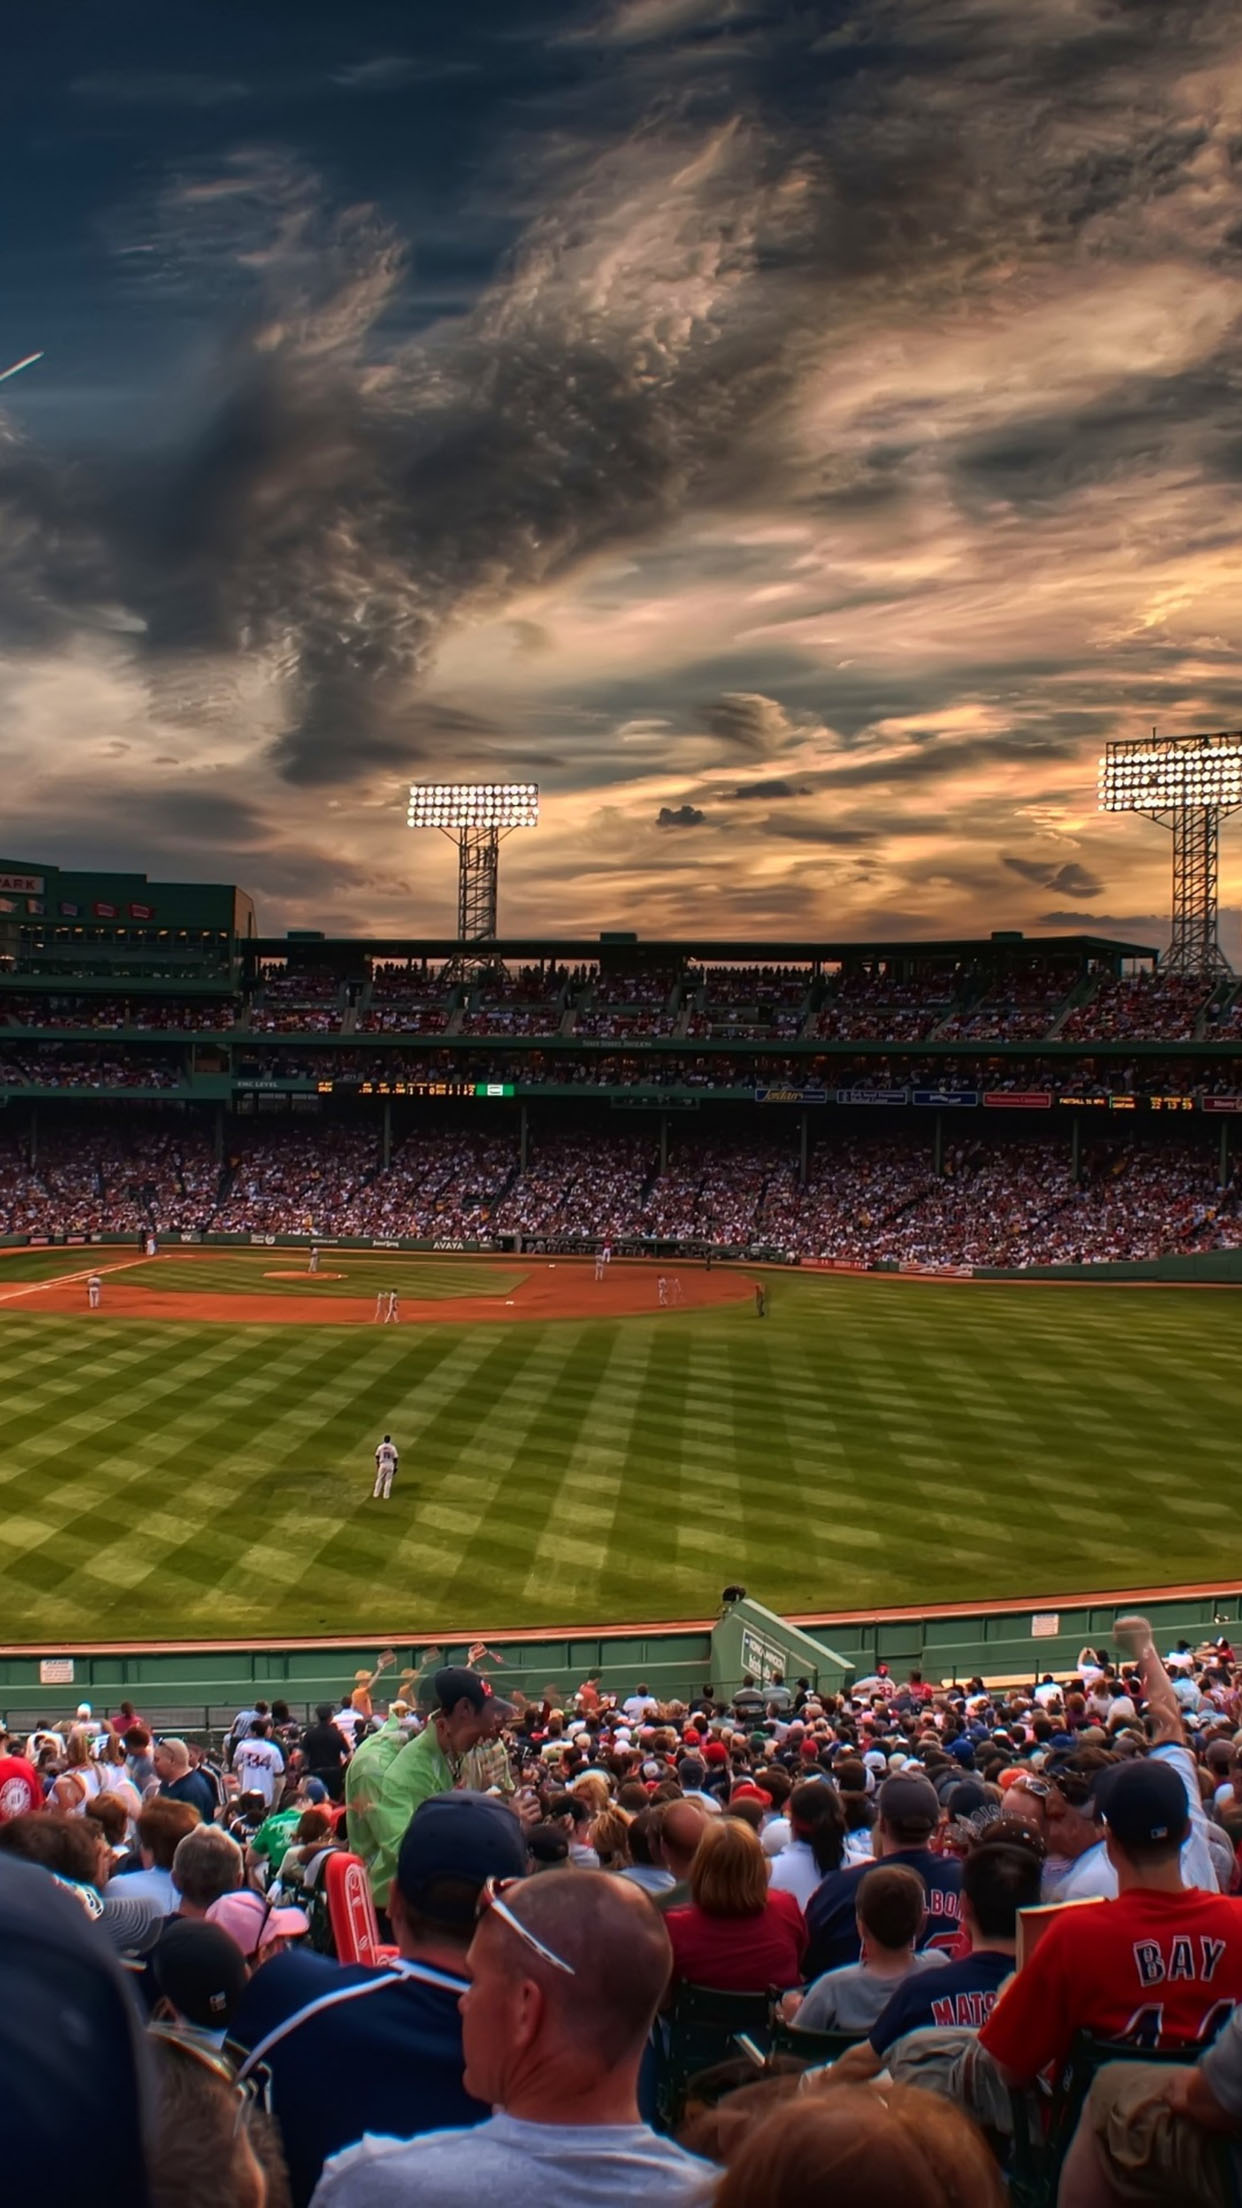 Red Sox Wallpaper Iphone X Baseball Stadium Wallpaper For Iphone X 8 7 6 Free